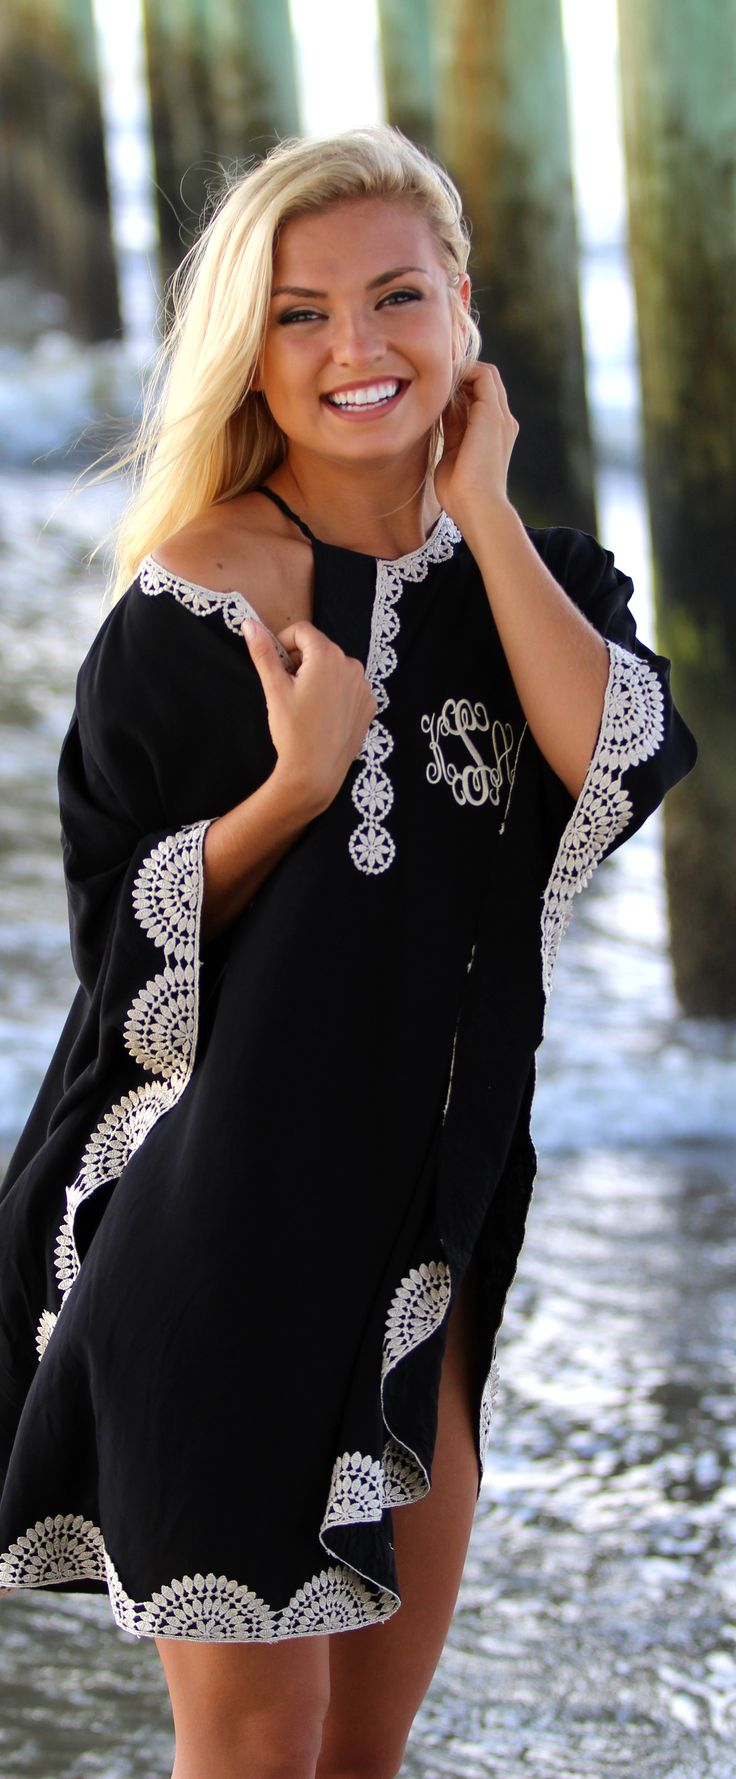 Shop our gorgeous Beach Tunic on SALE now!